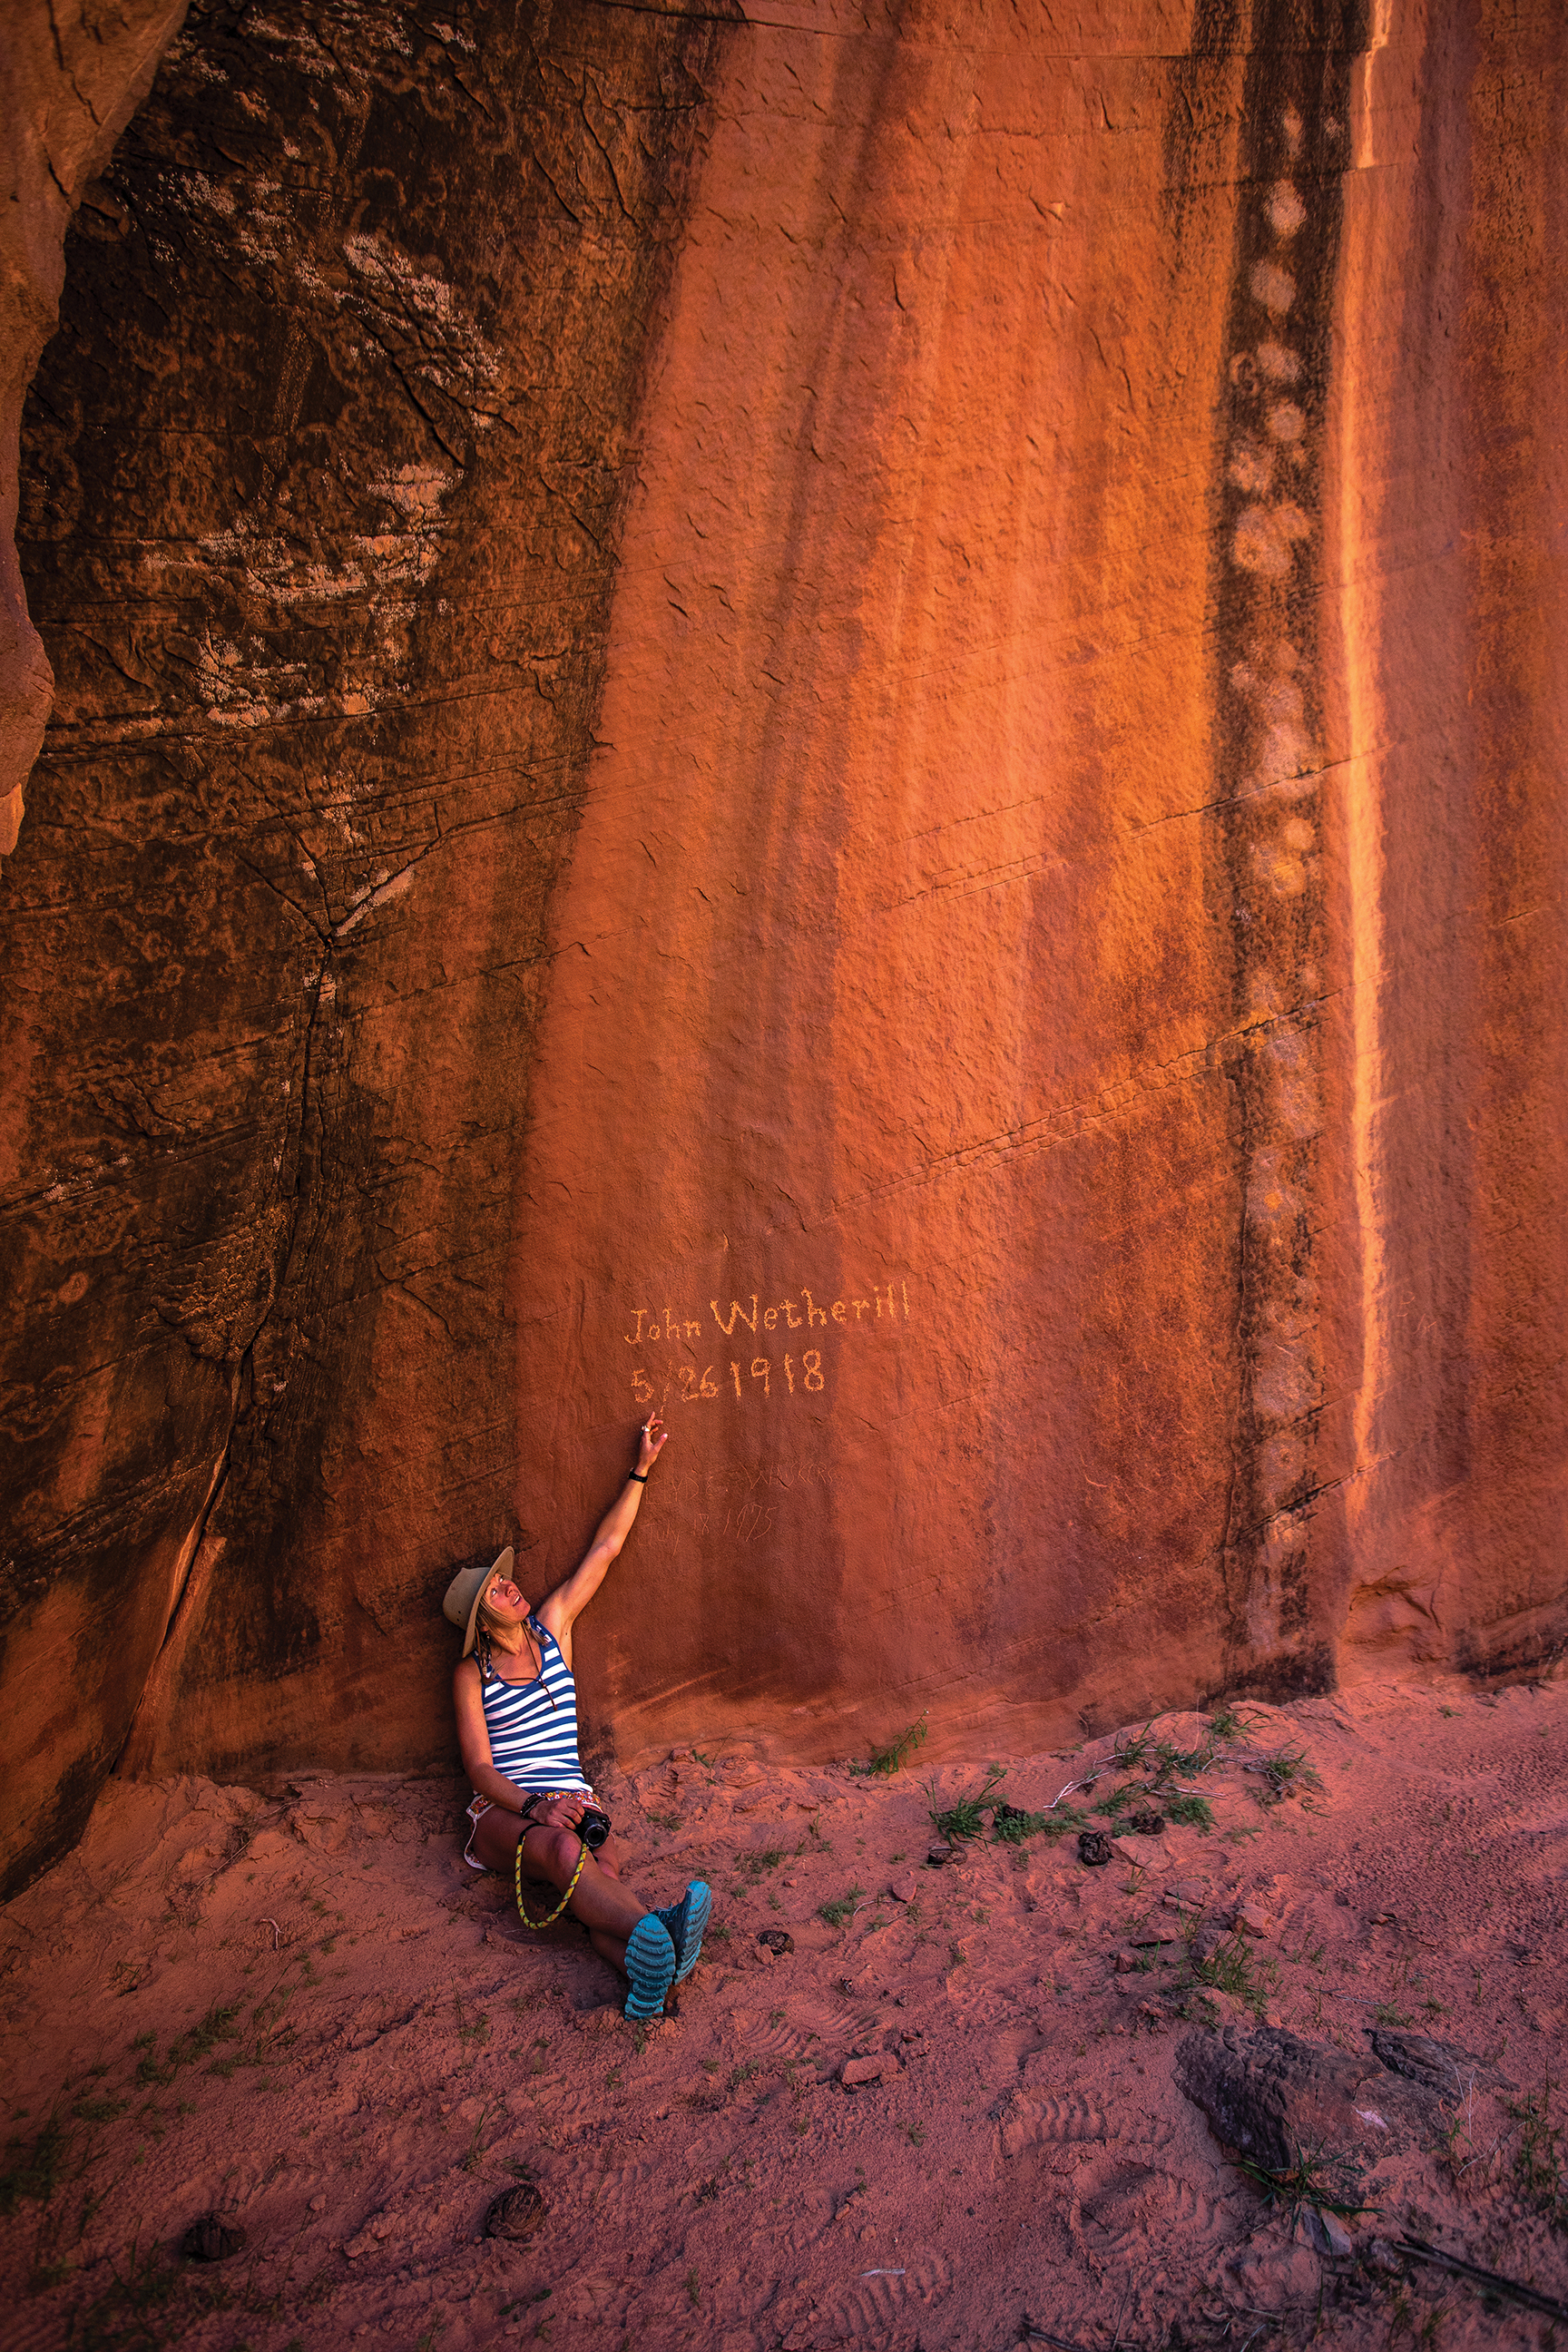 Inscription in a remote remote canyon below the Rainbow Trail. Photo by Stephen Eginoire